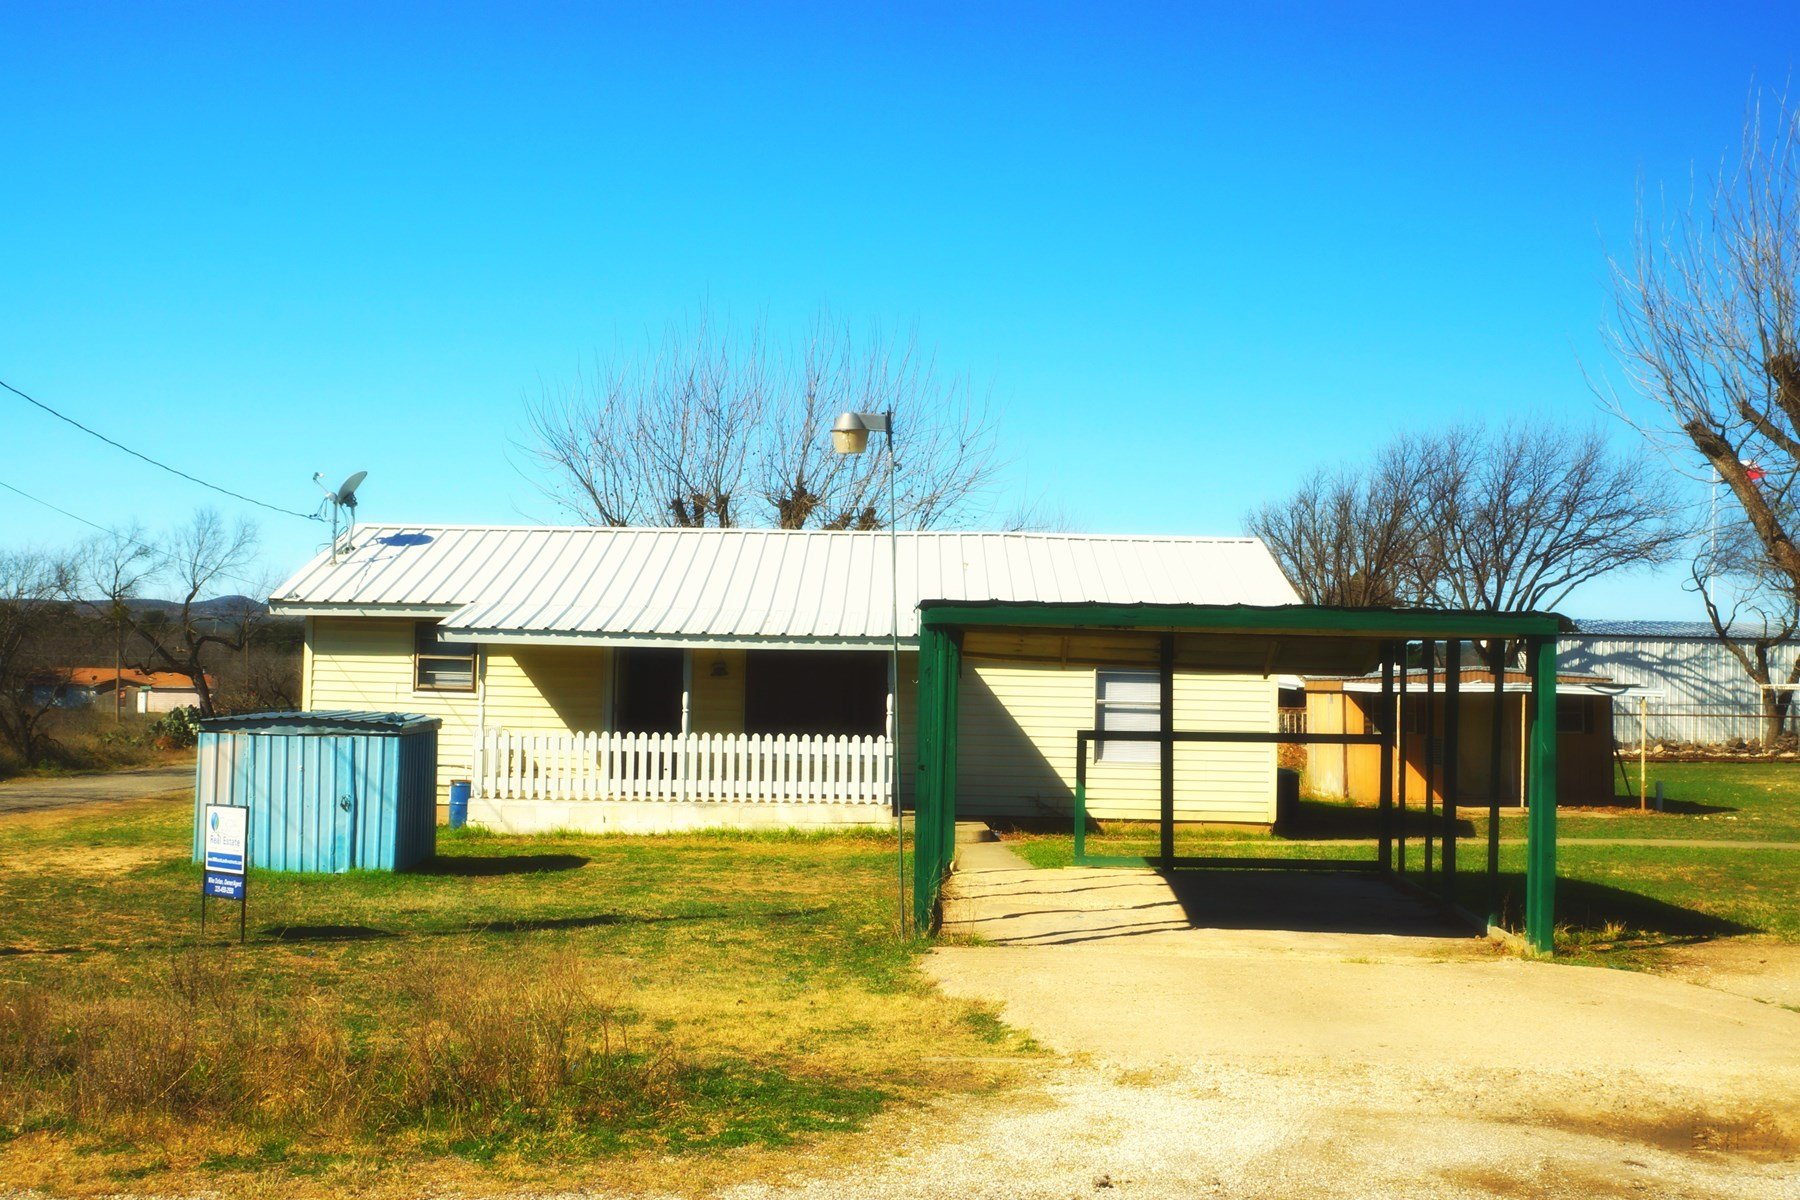 SHERWOOD COTTAGE FOR SALE NEAR MERTZON, TEXAS